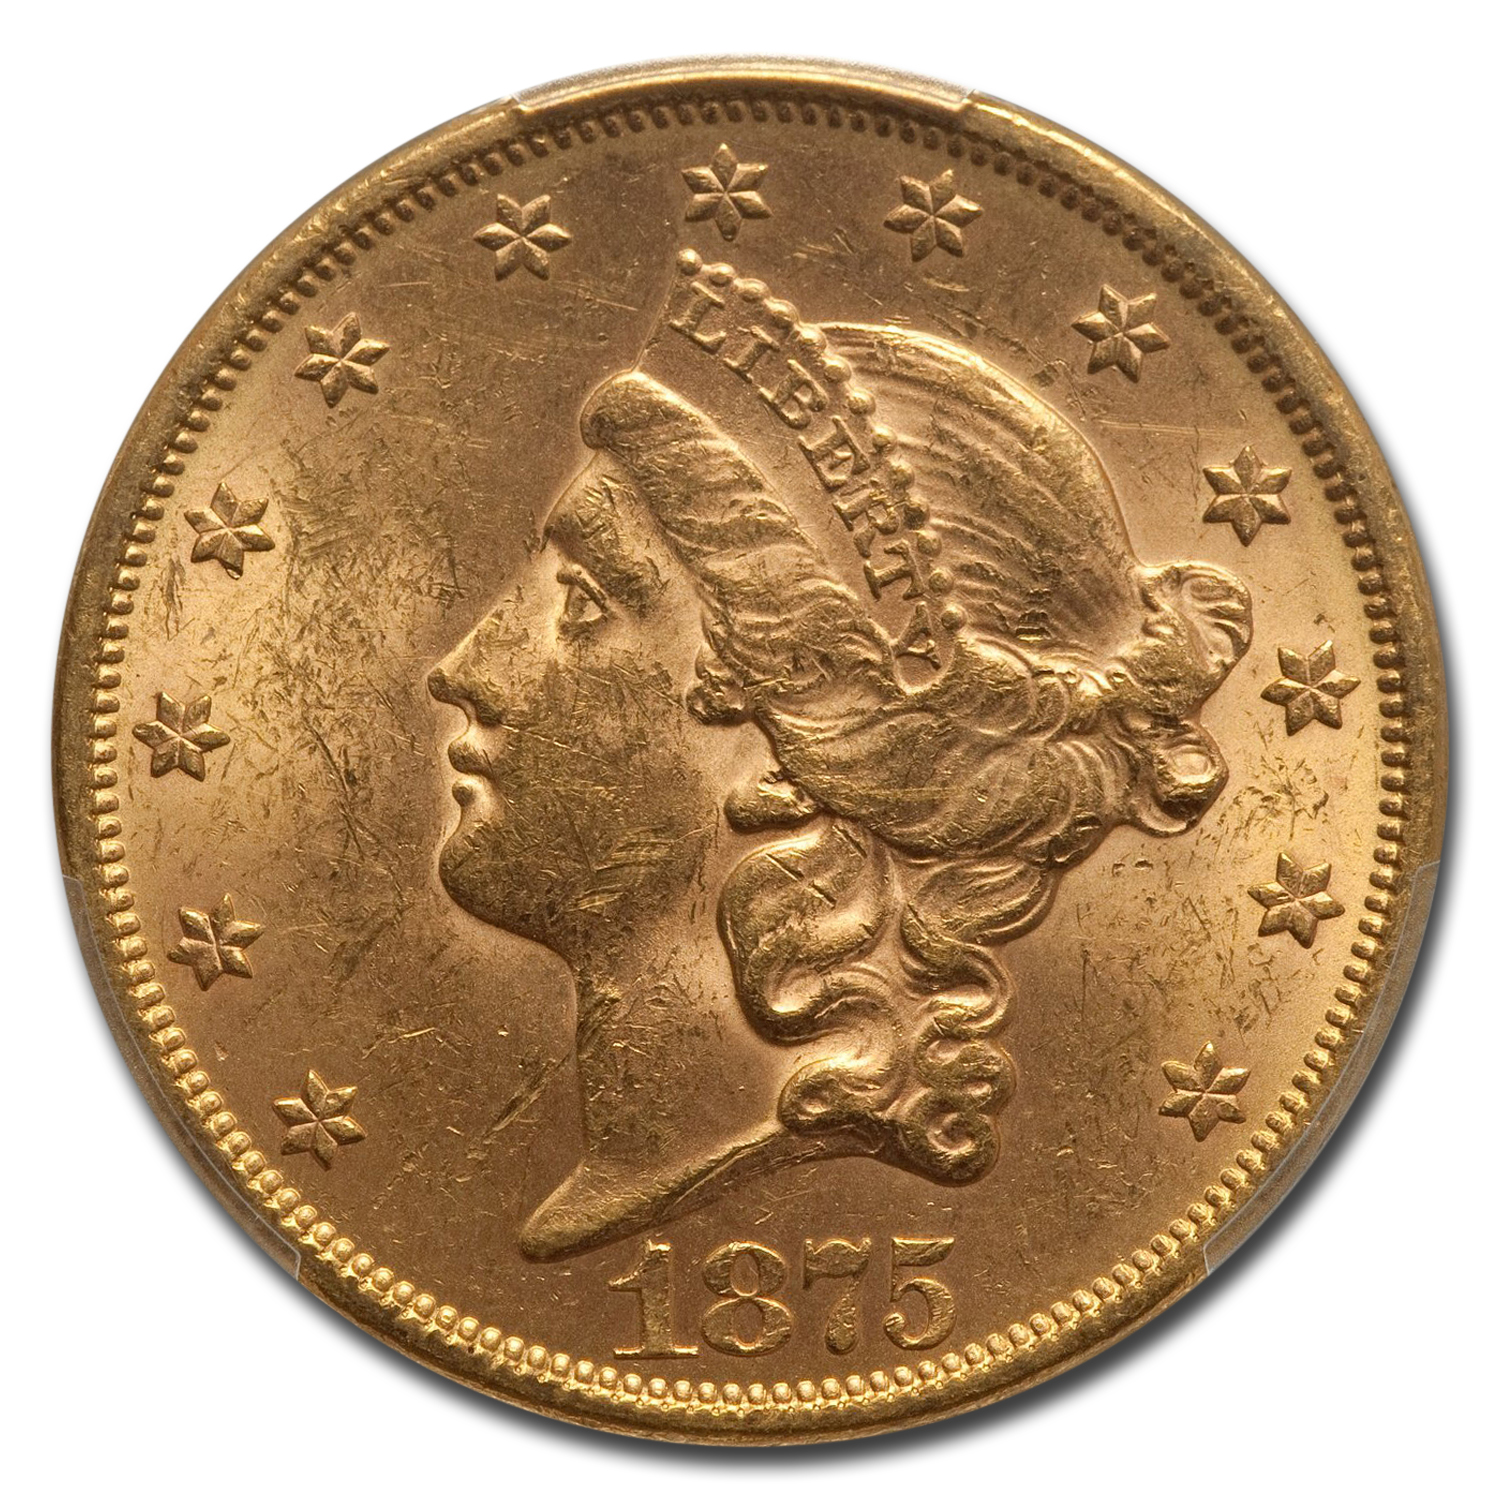 1875 $20 Liberty Gold Double Eagle MS-62 PCGS